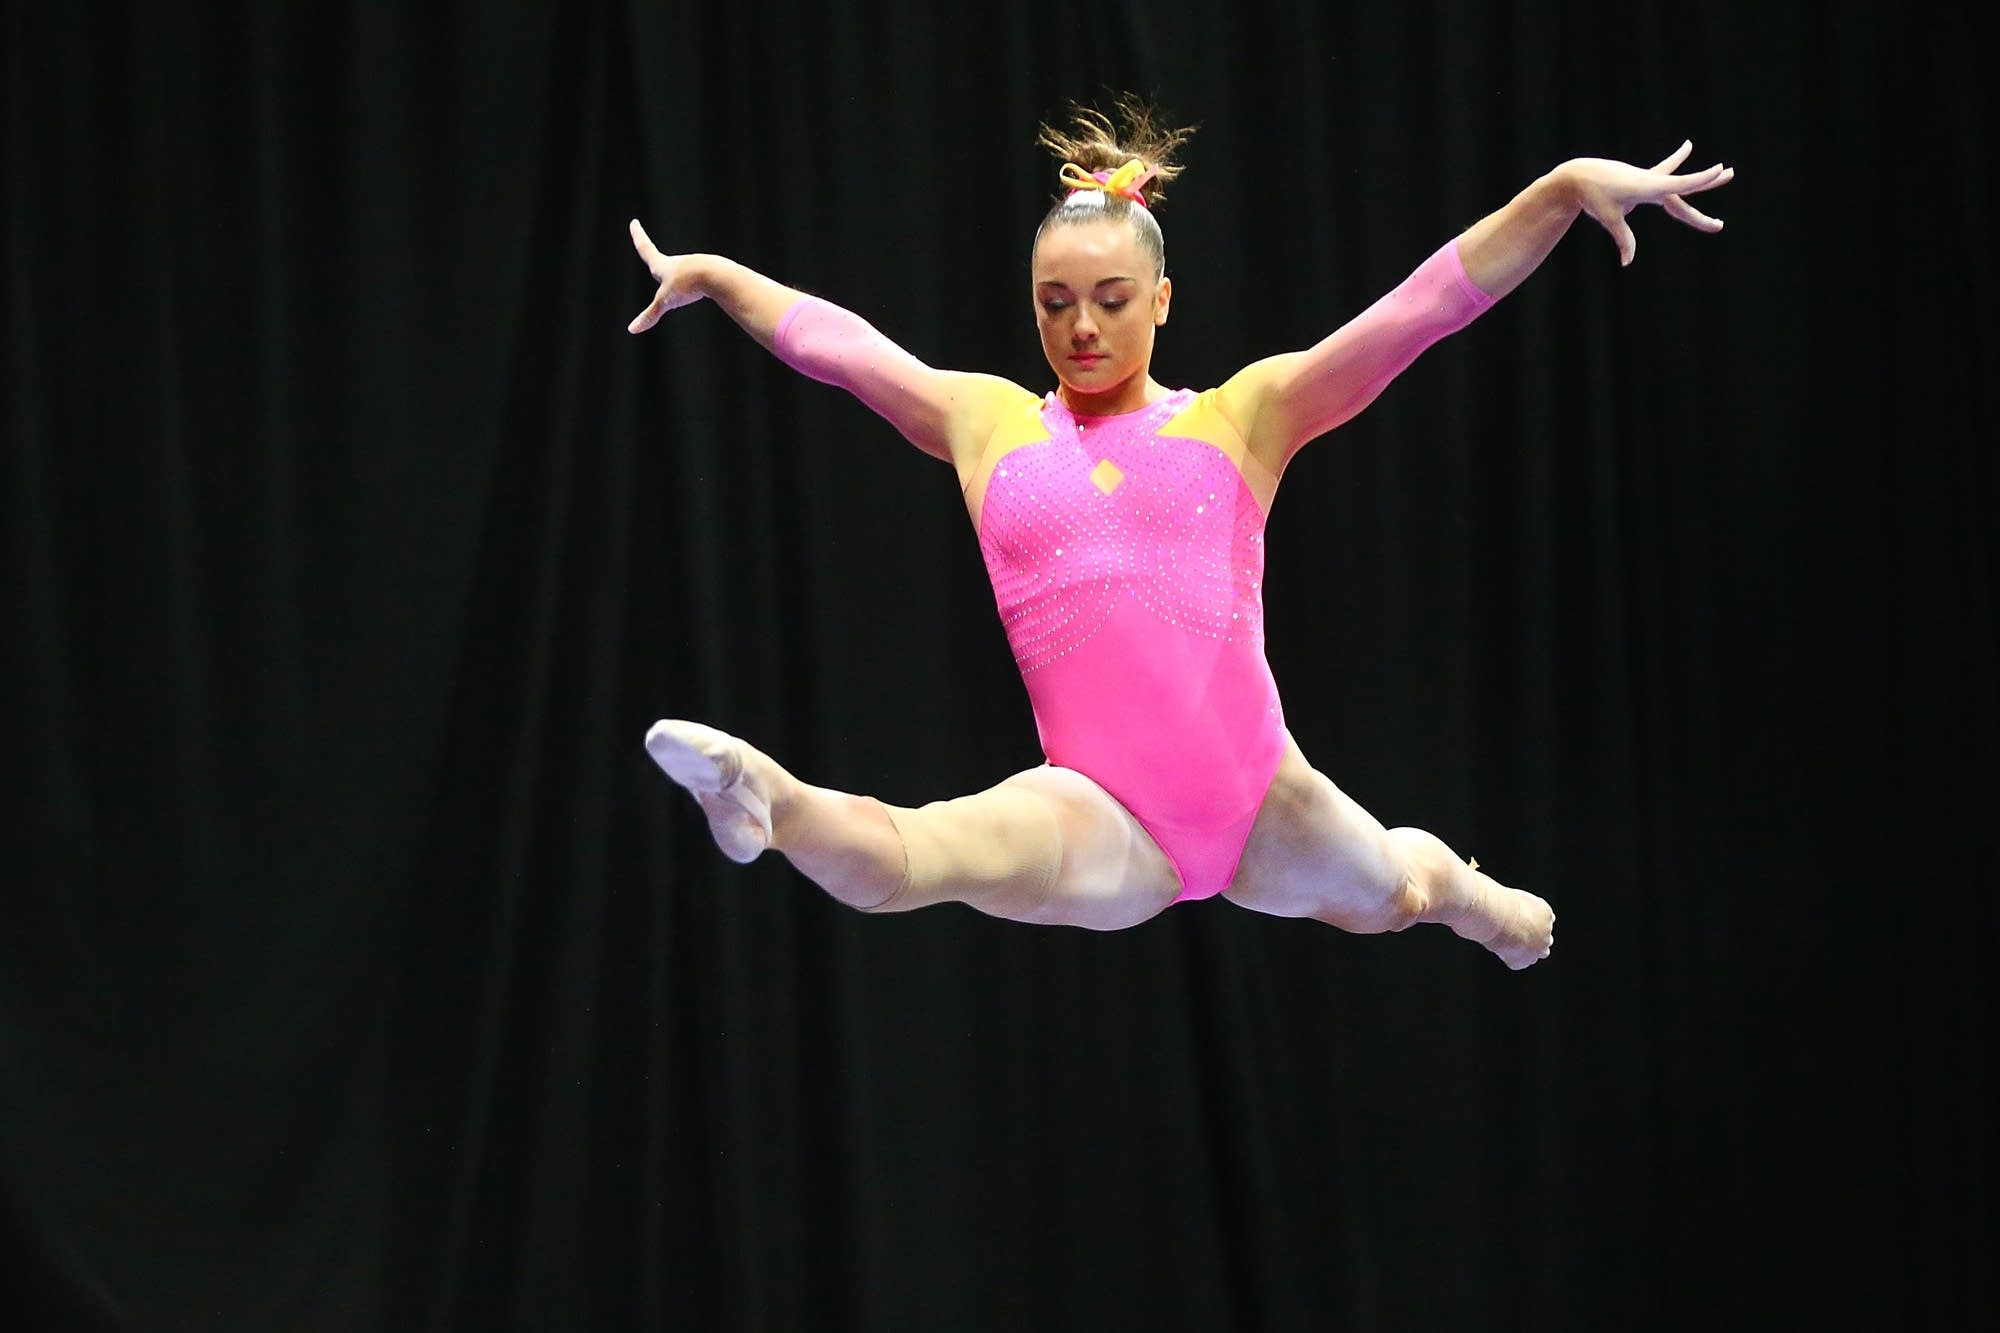 Maggie Nichols competes on the balance beam in 2016.